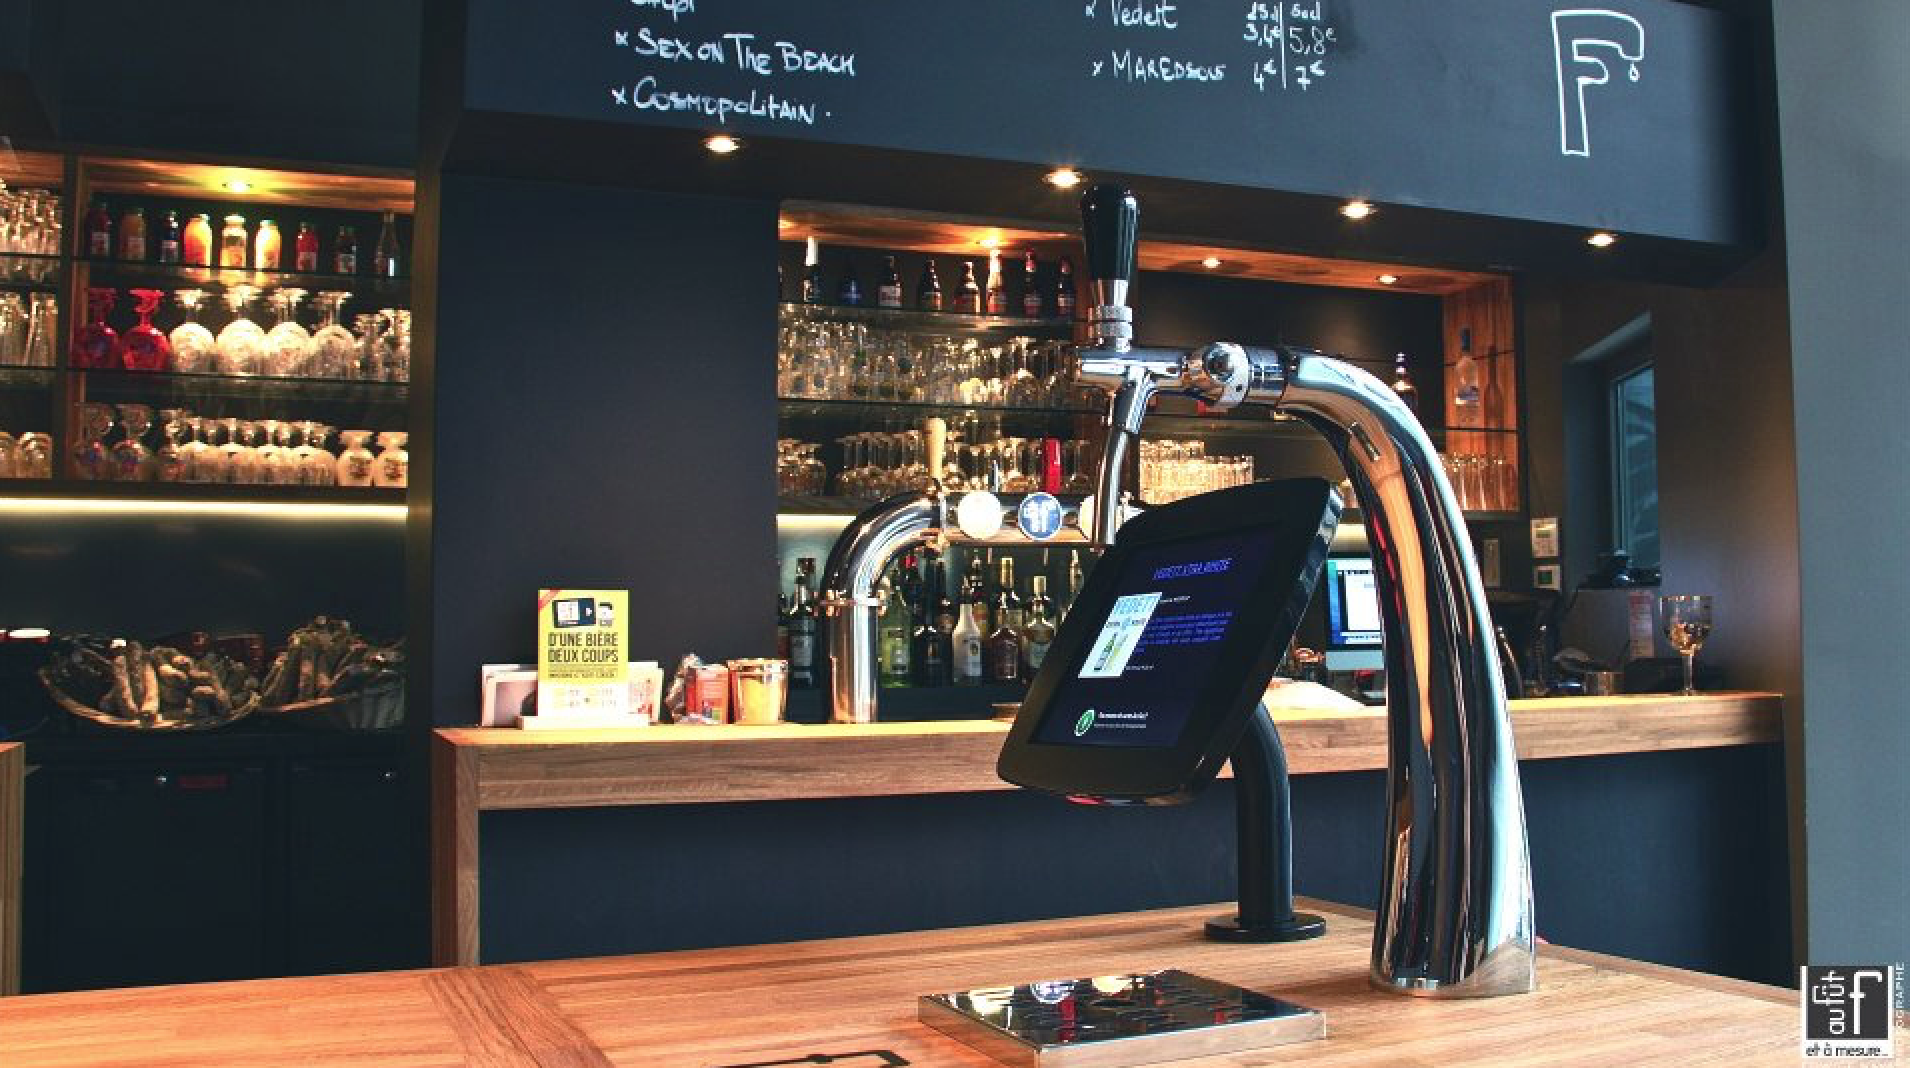 Self-service beer tap on a table